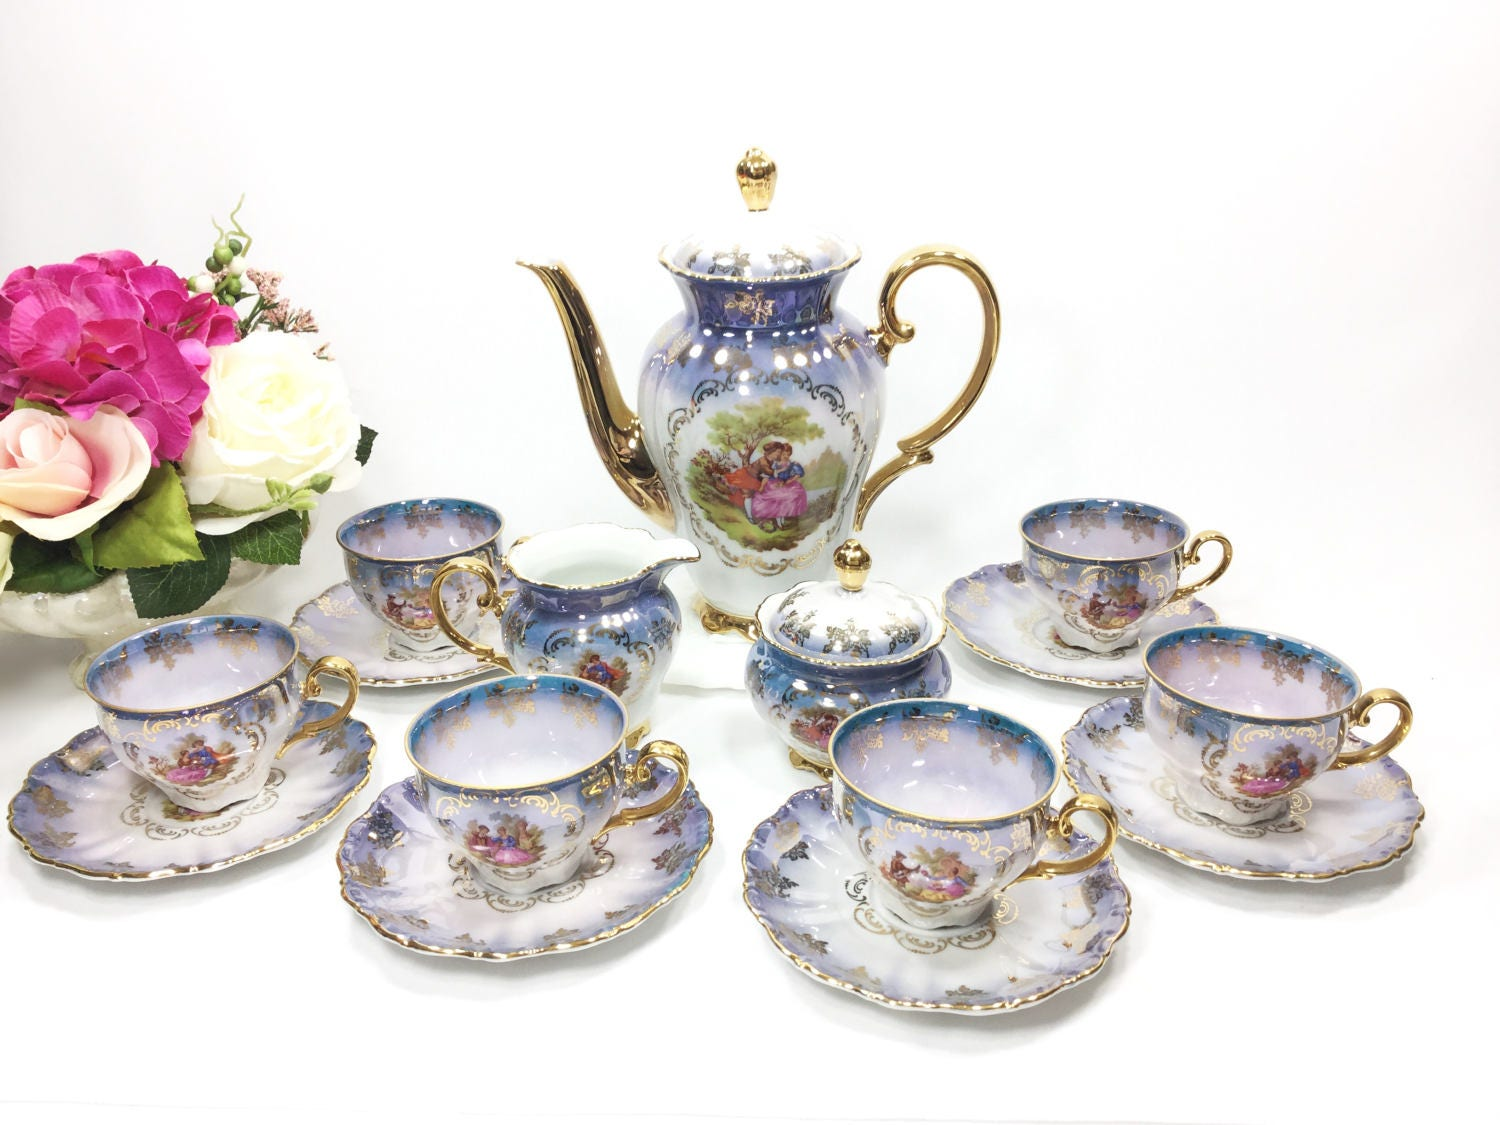 seltmann weiden bavaria porzellan 17 piece fragonard tea set german love story teaset courting. Black Bedroom Furniture Sets. Home Design Ideas